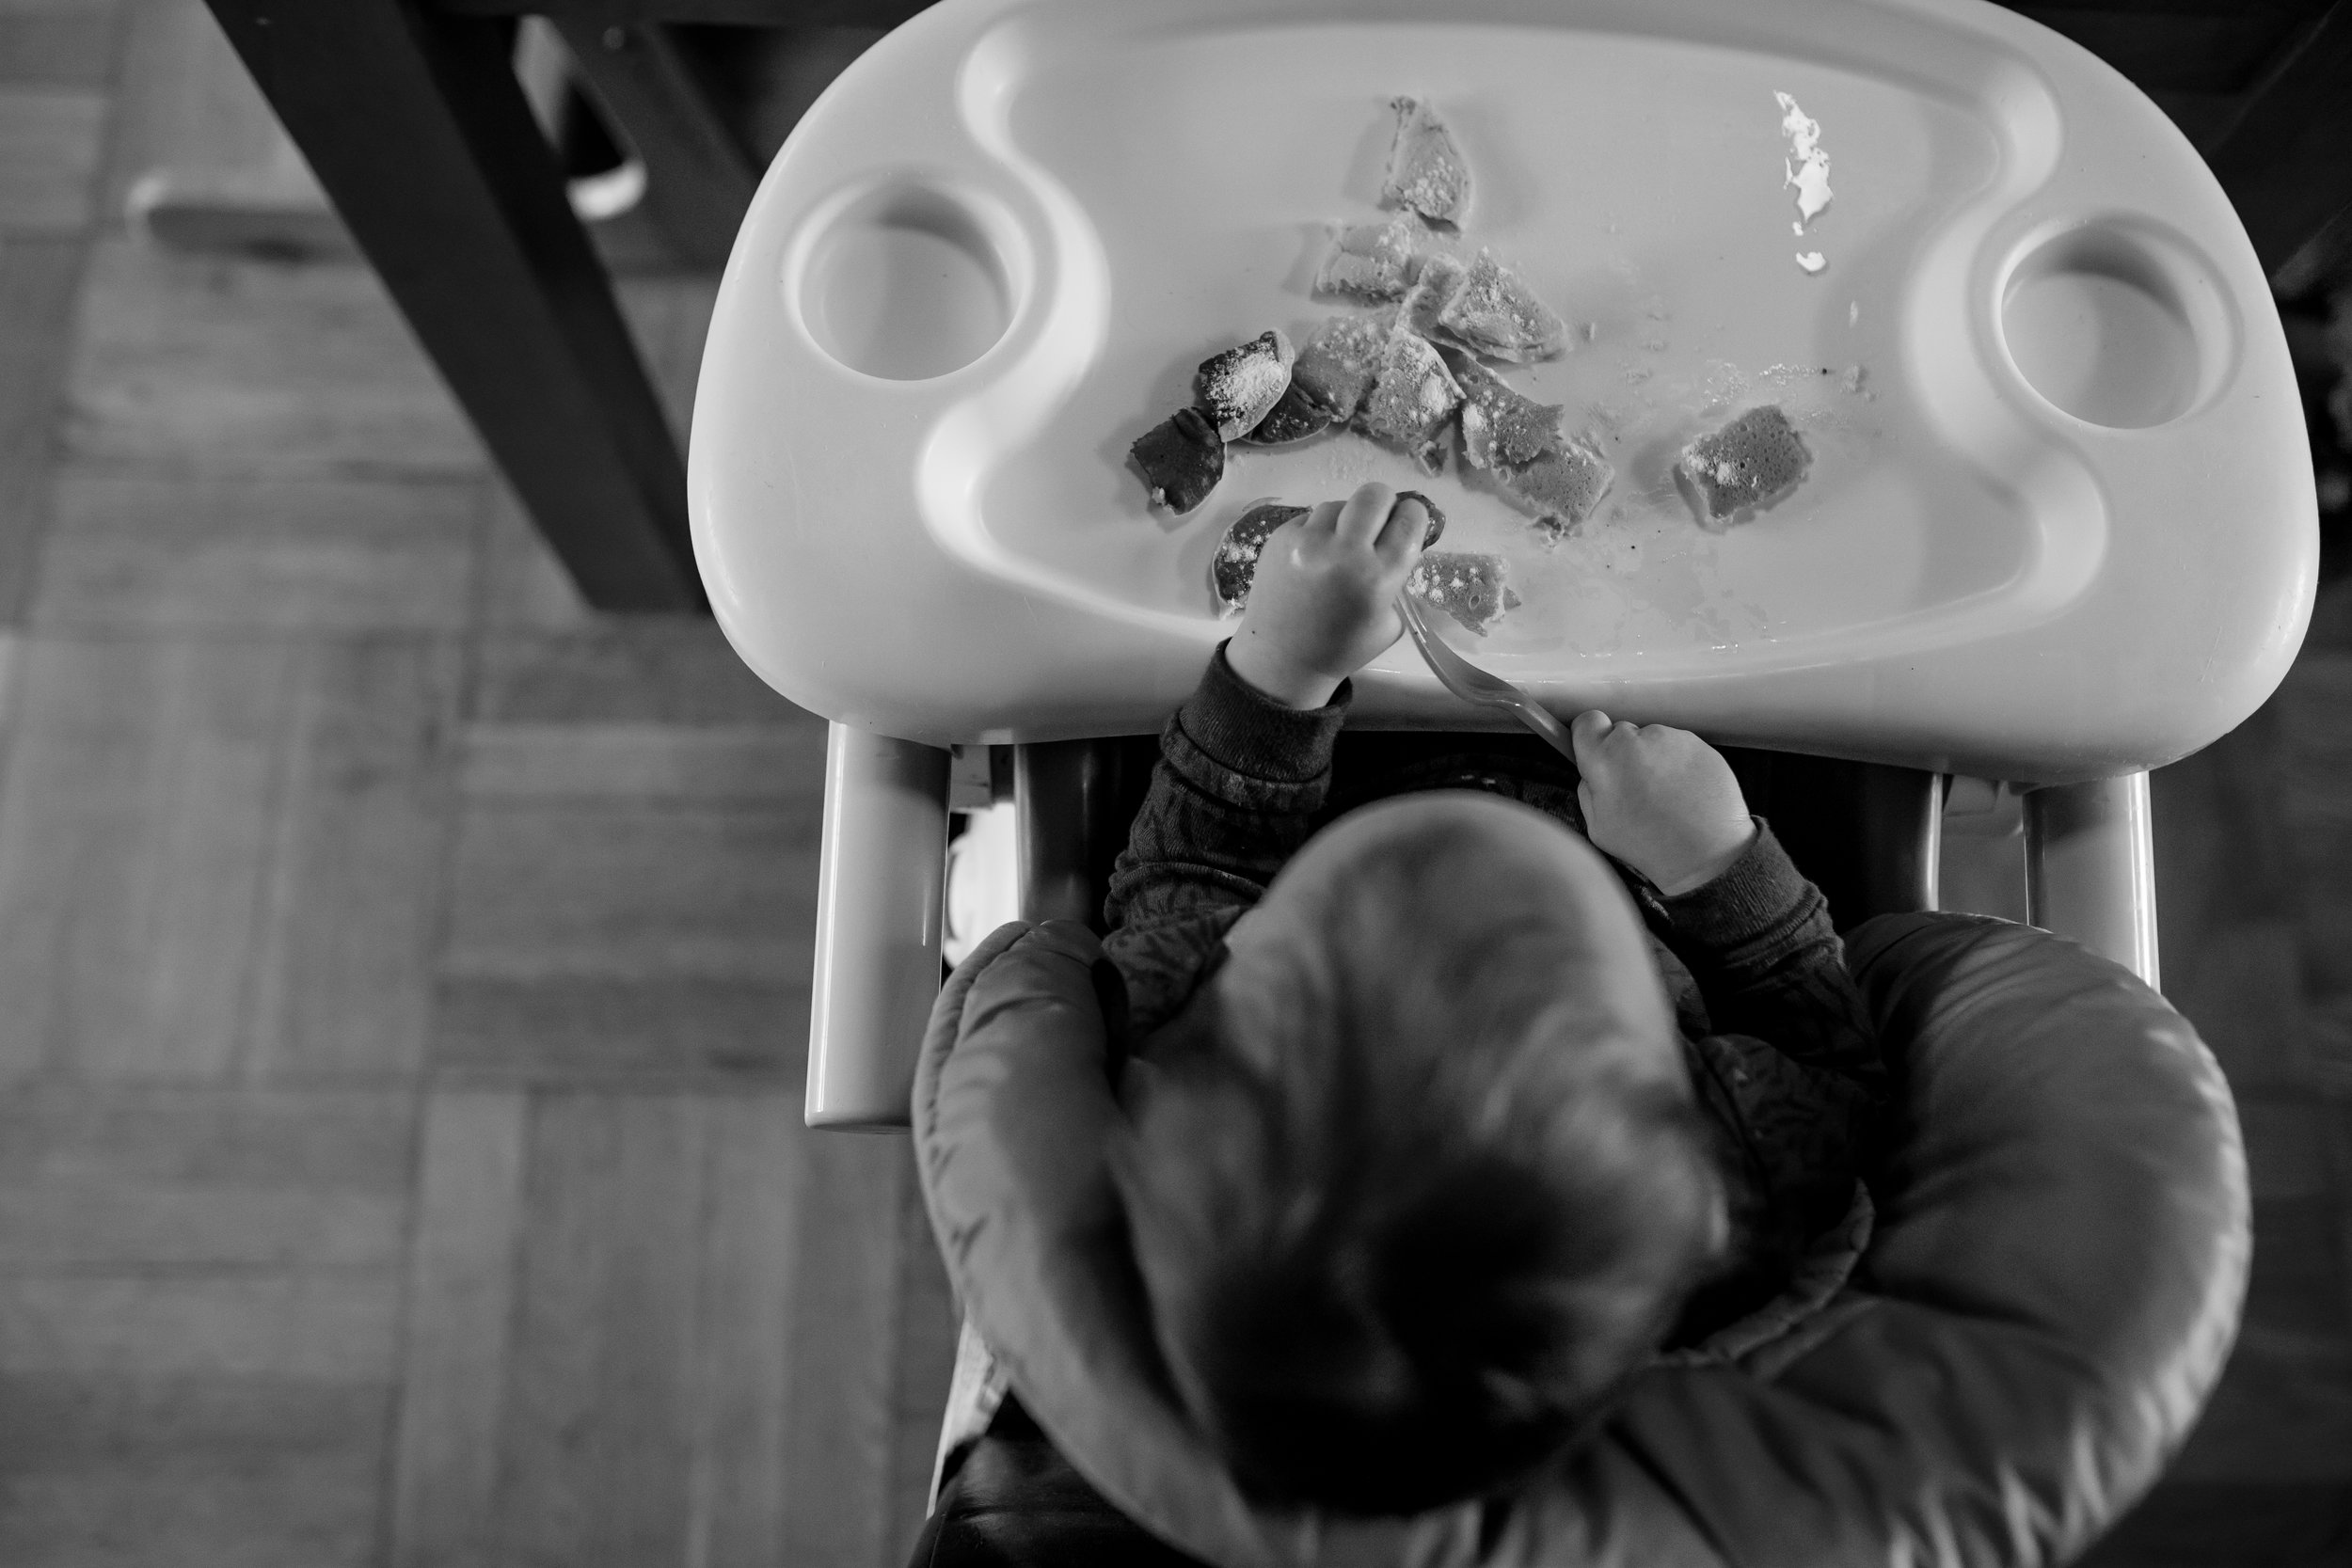 Baby eats pancakes off of high chair tray